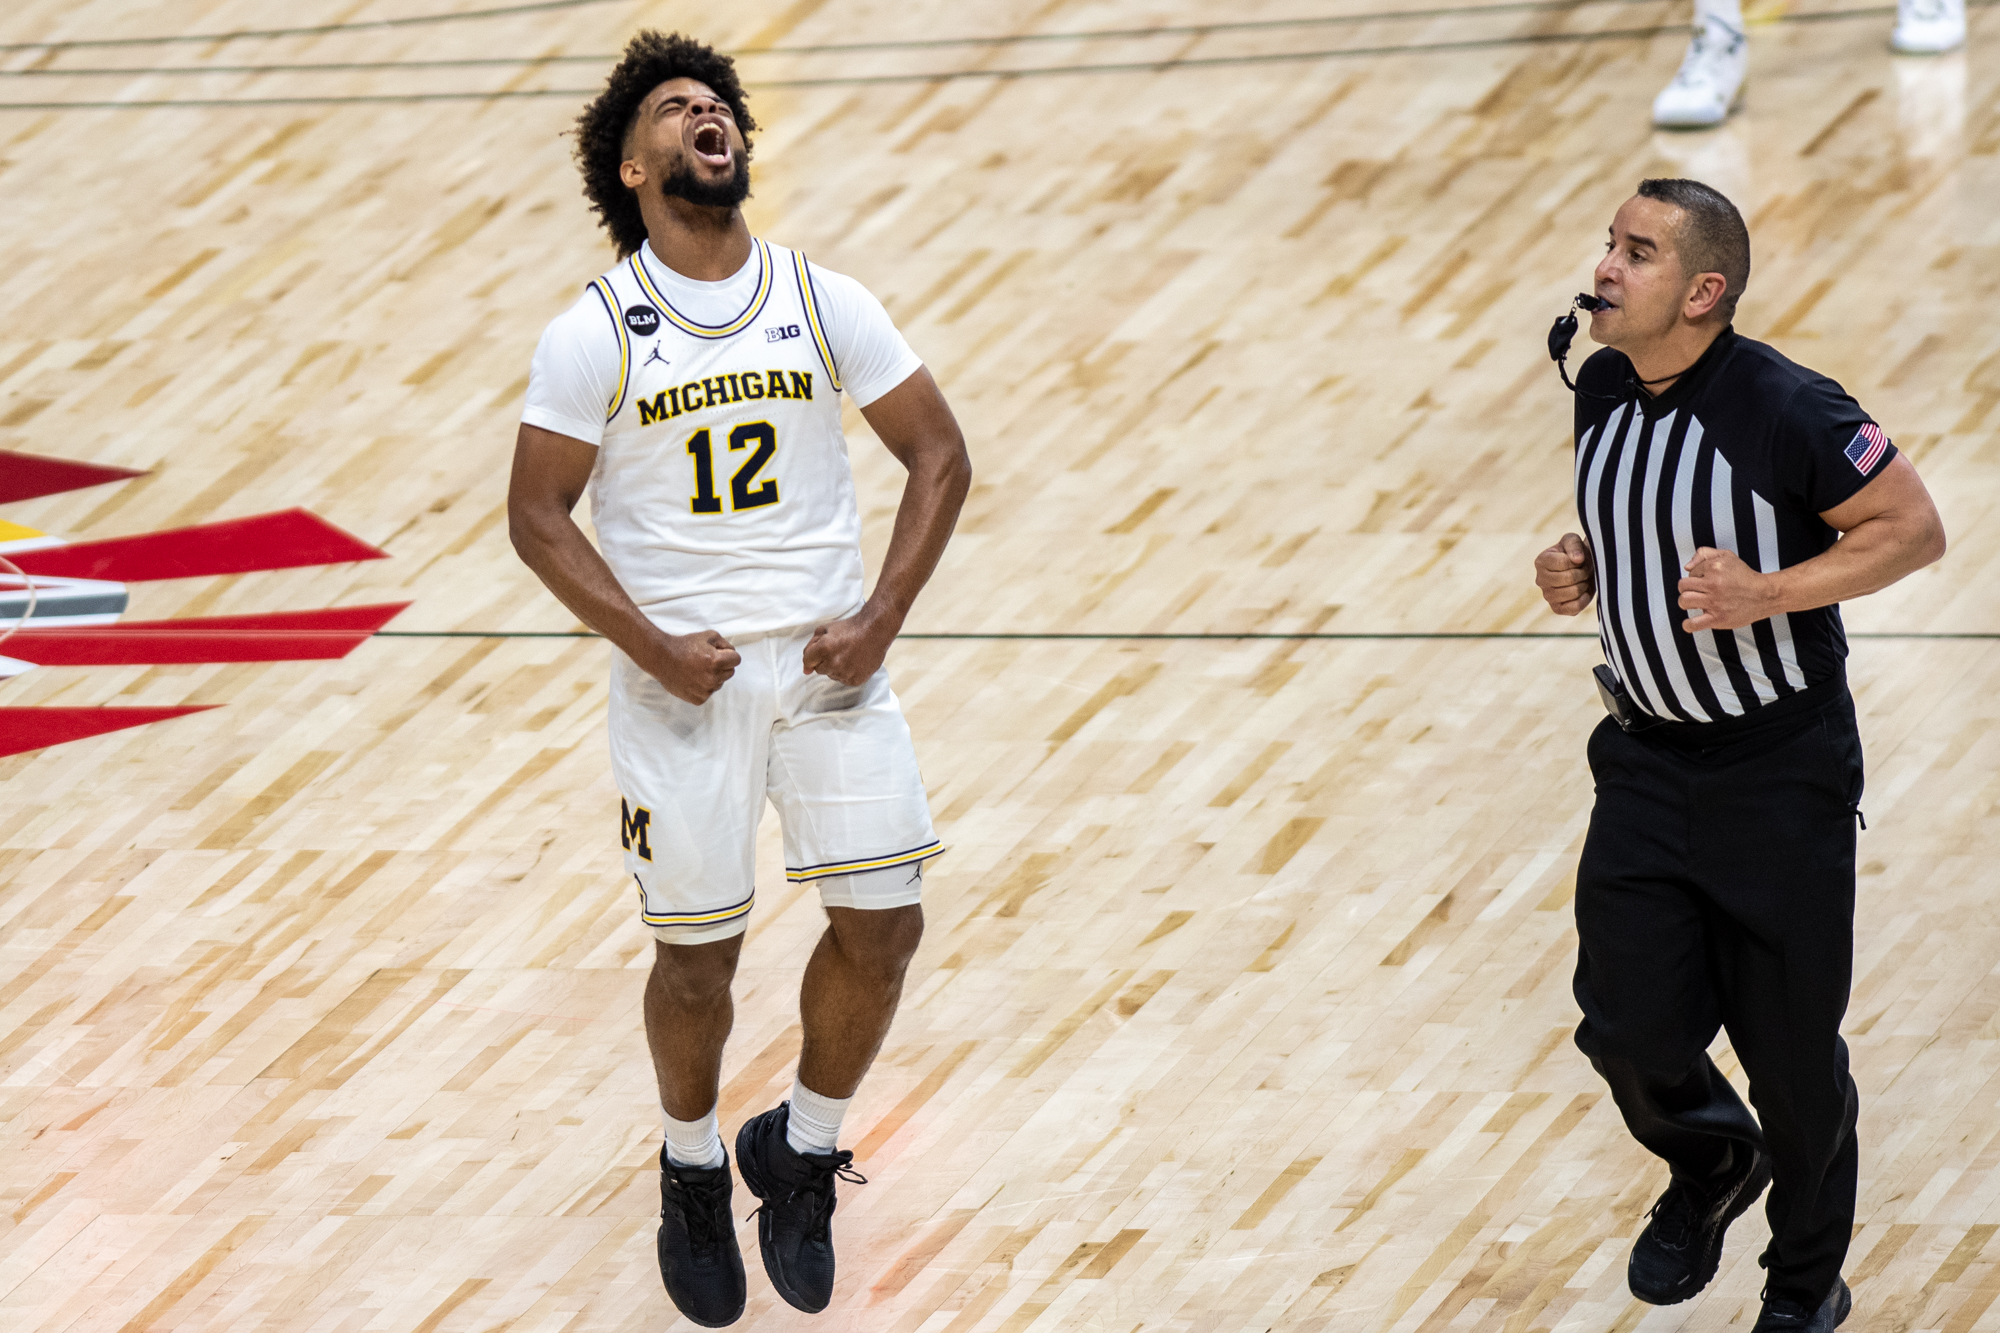 Man in white jersey with maize and blue stripes jumps and screams in excitement while referee watches